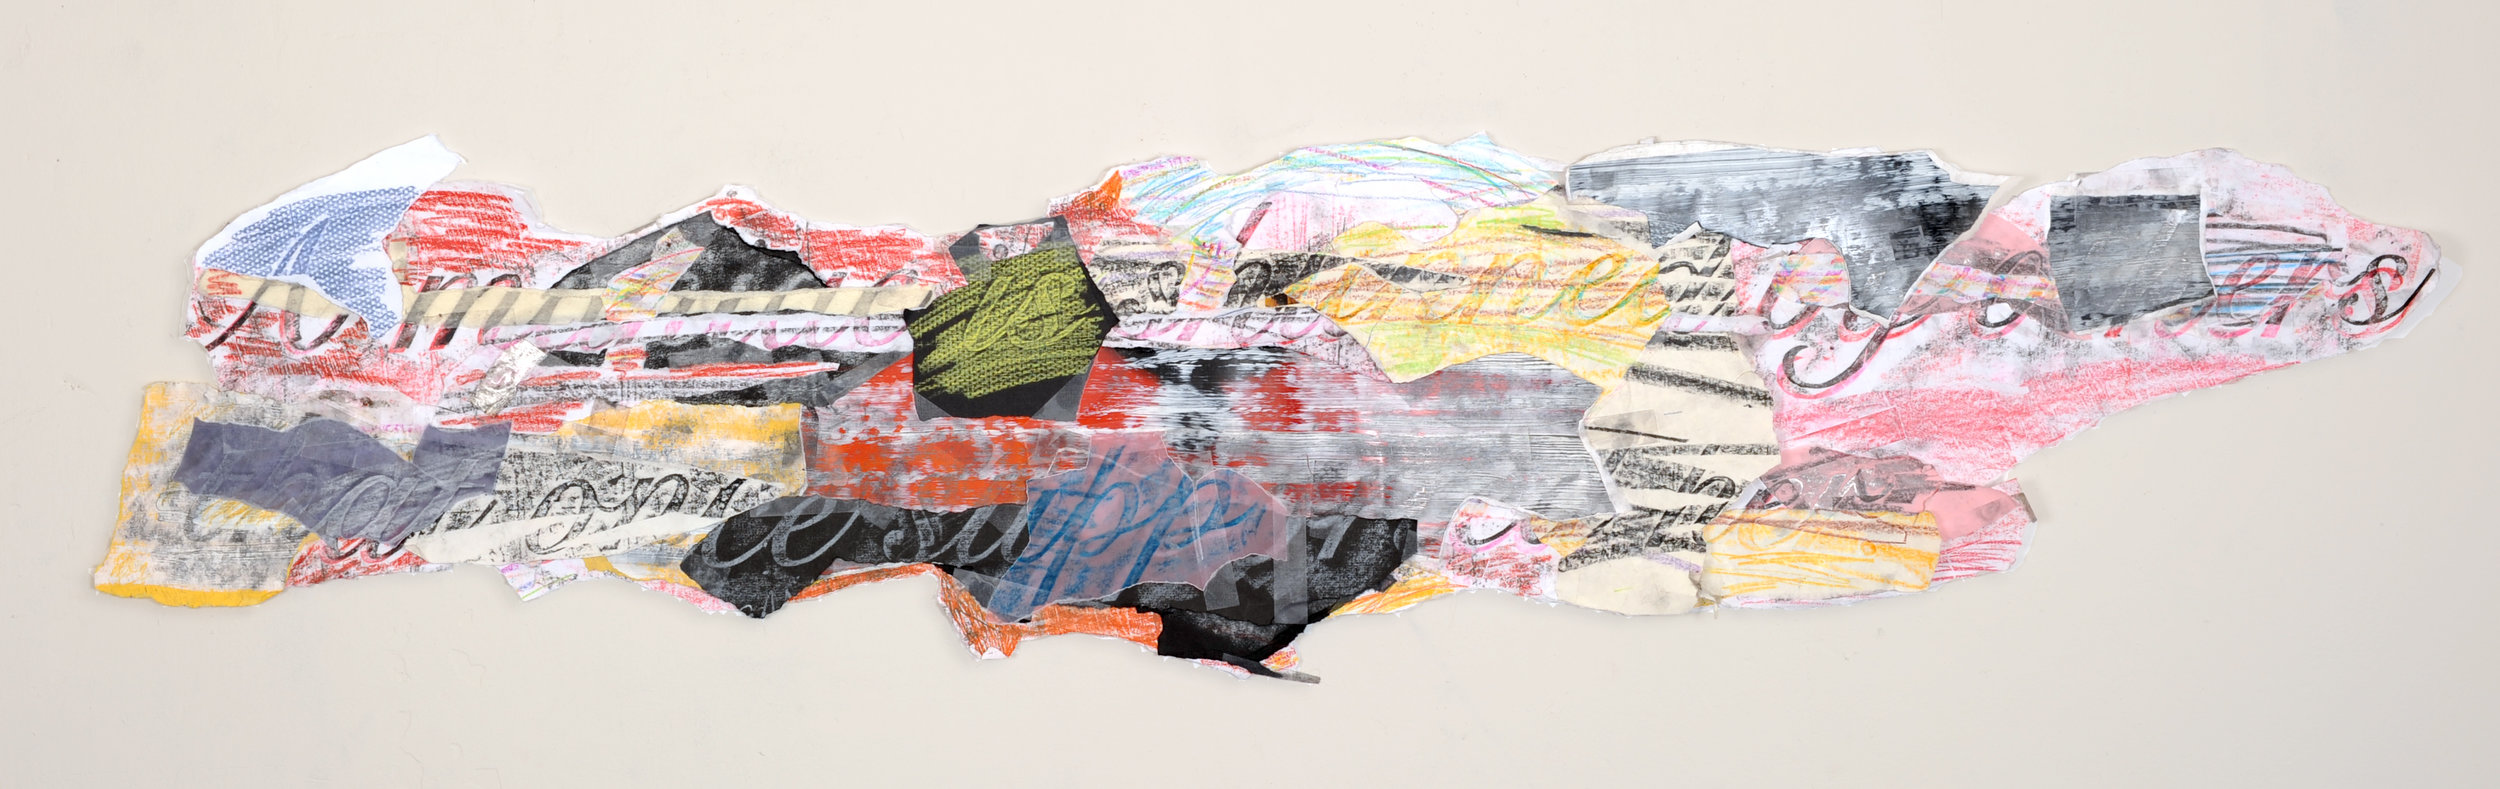 Synopsis #15 version 2 , 2009-11 Graphite, crayon, spray paint, photographs, paper, tape 12 x 58 inches